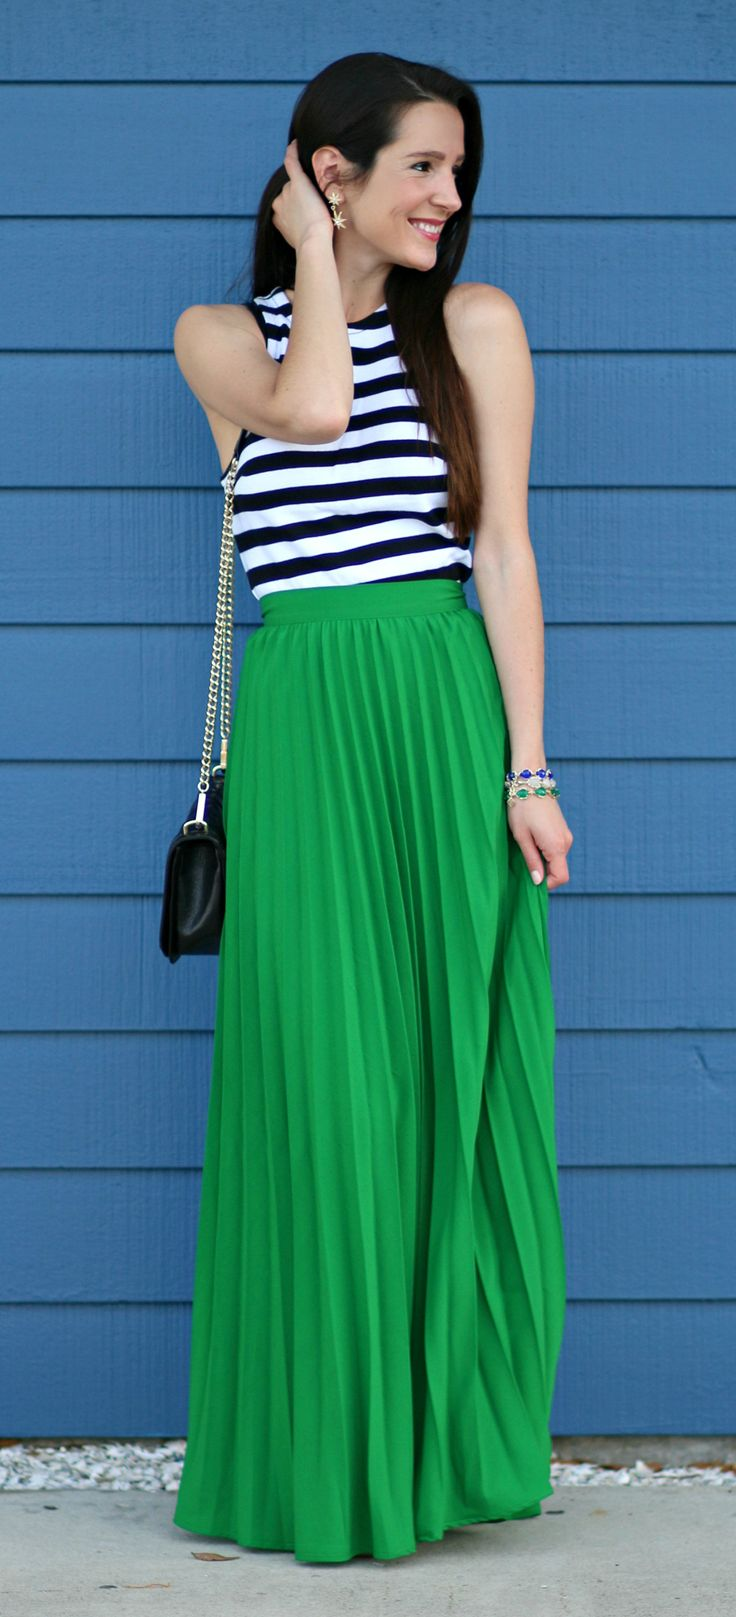 Pleated kelly green maxi skirt with a Banana Republic rugby stripe tank, black Rebecca Minkoff Love Crossbody bag, and nude Tory Burch Miller sandals. Cute spring outfit idea!